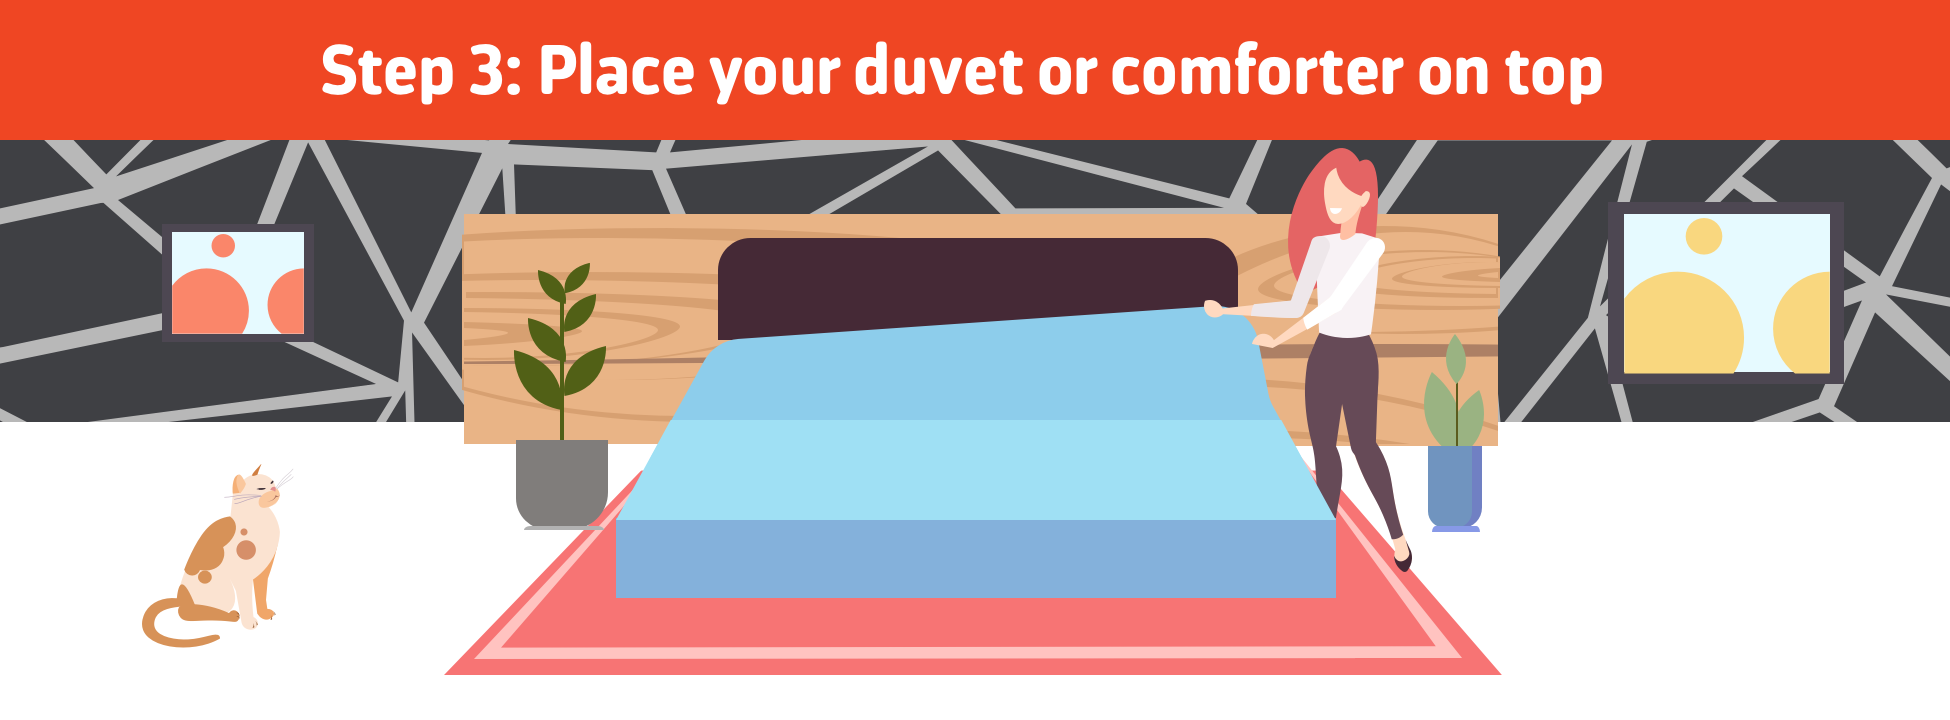 comforter or duvet over your sheet